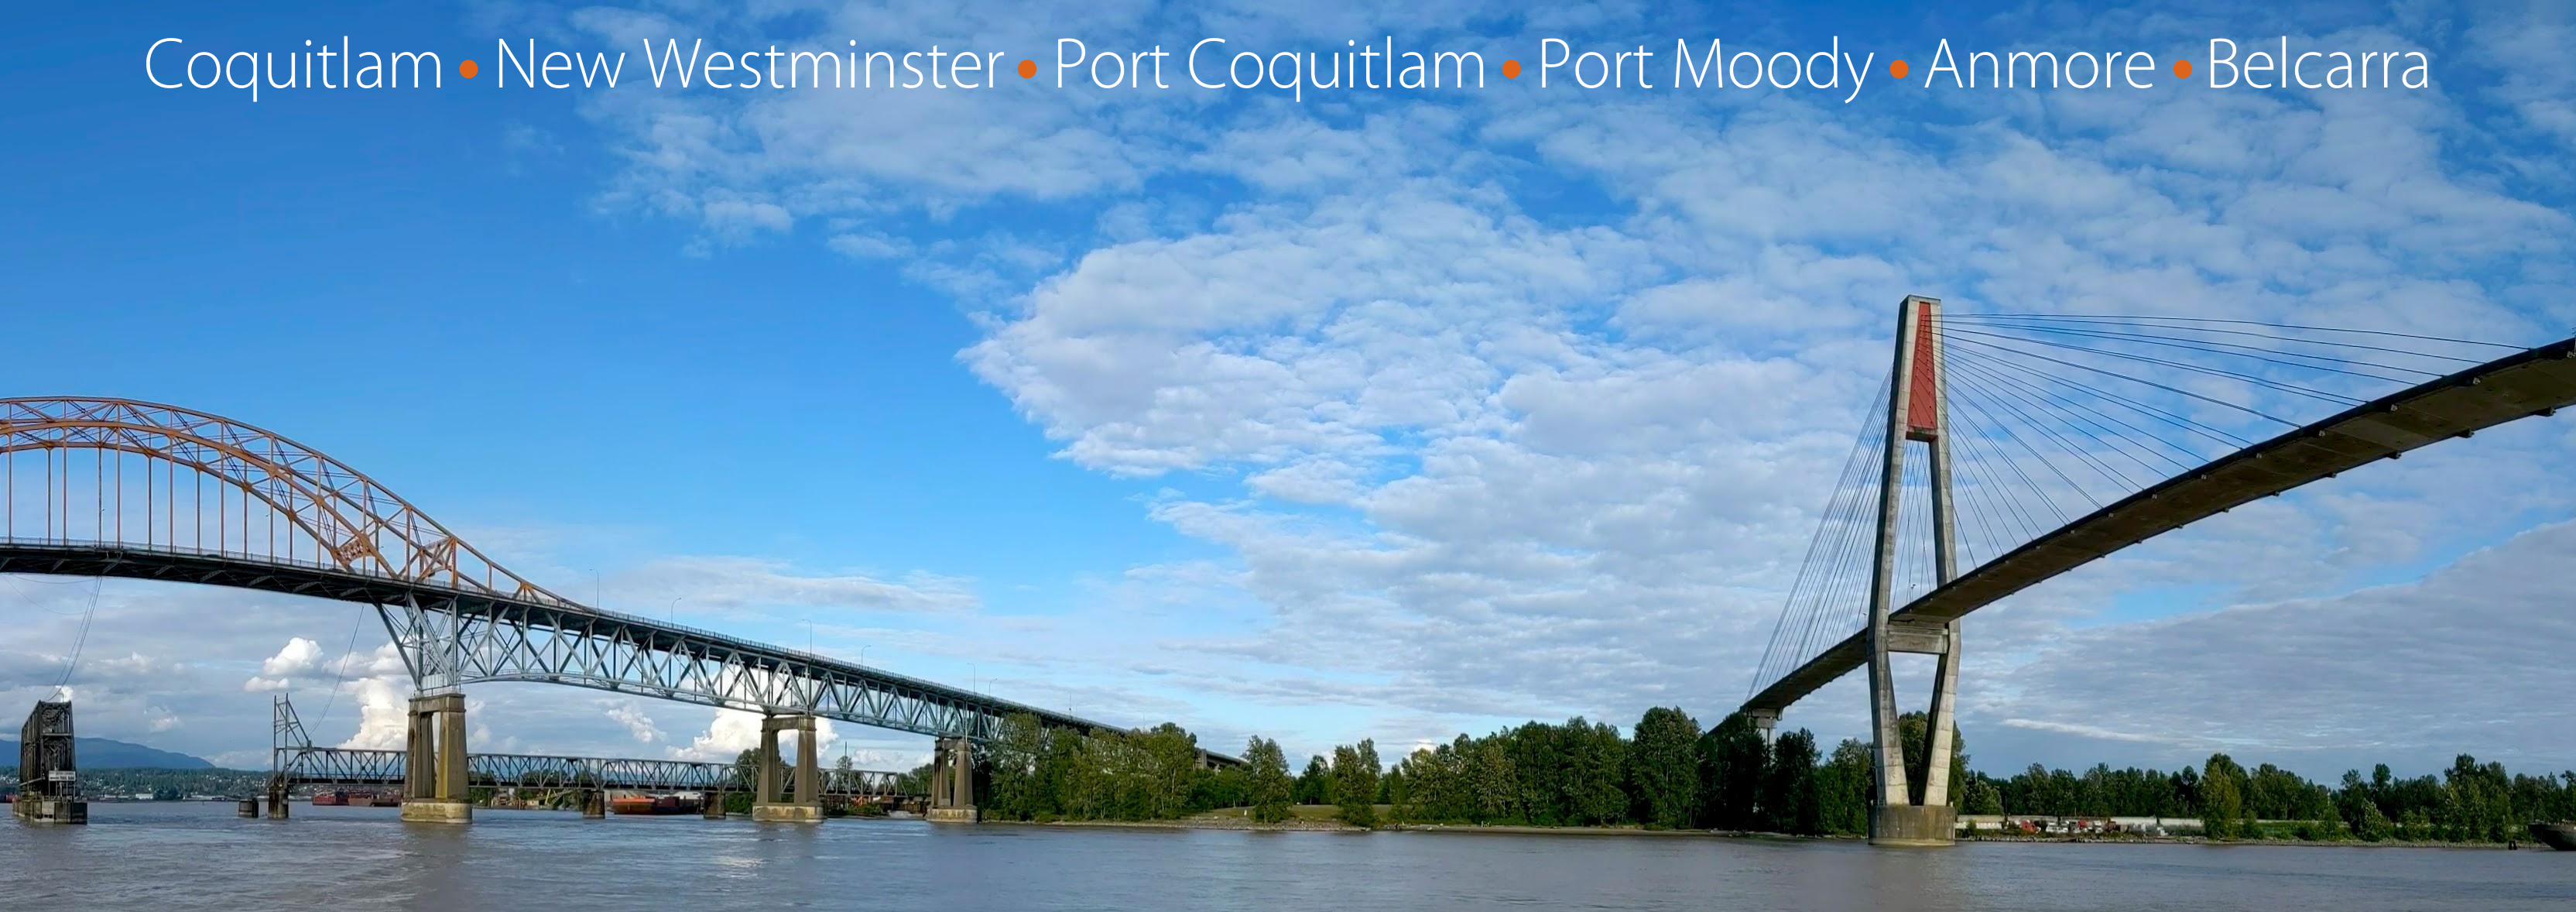 Coquitlam, New Westminster, Port Coquitlam, Port Moody, Anmore, Belcarra